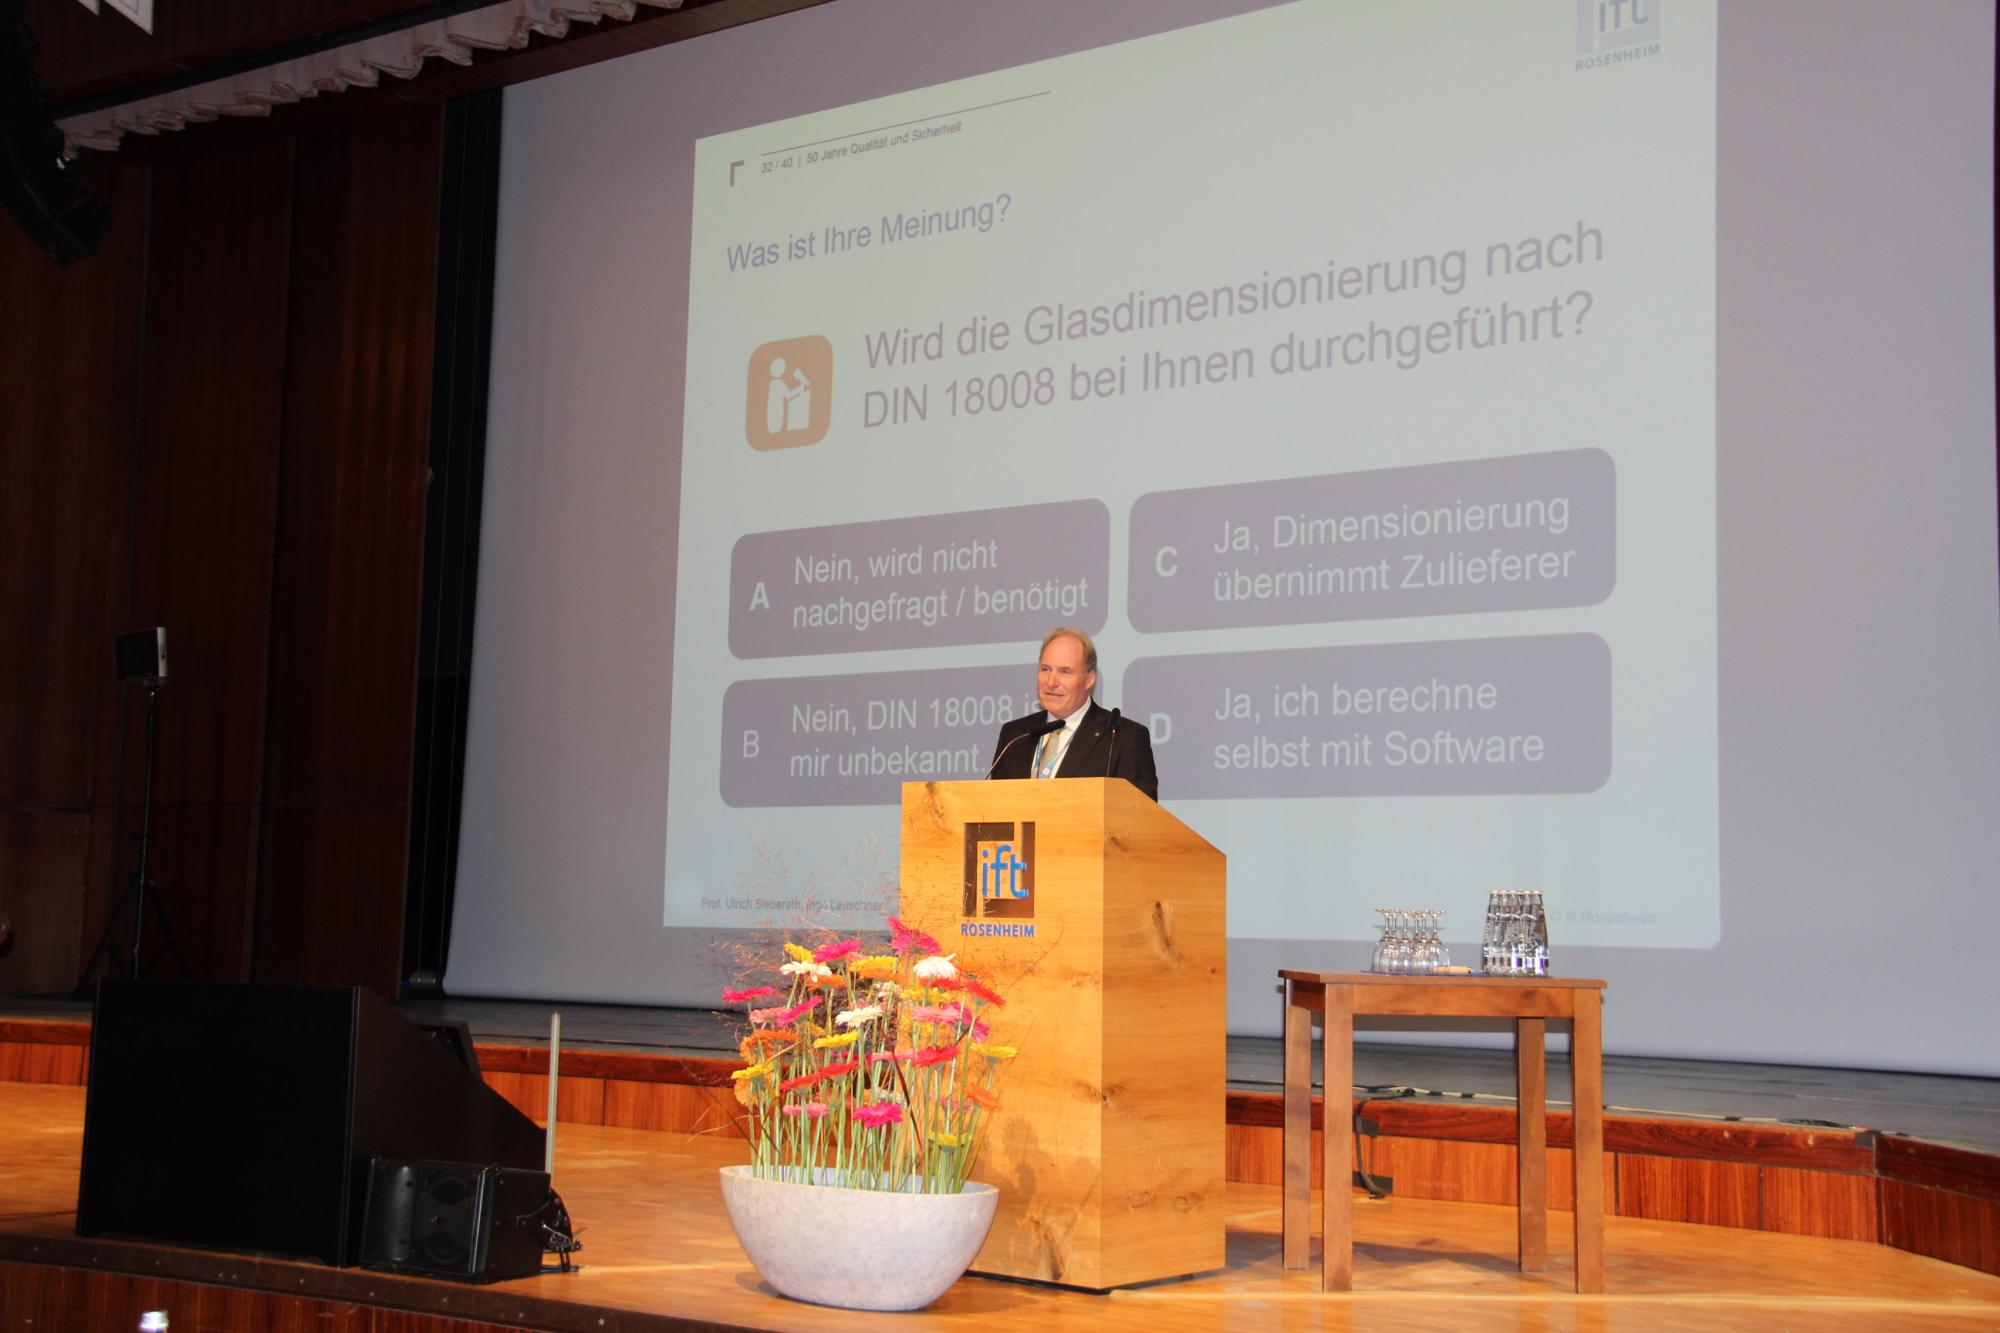 Head of the Institute, Prof. Ulrich Sieberath also poses a question to the audience, which, thanks to the ift event app, was answered in real time. (Source: ift Rosenheim)